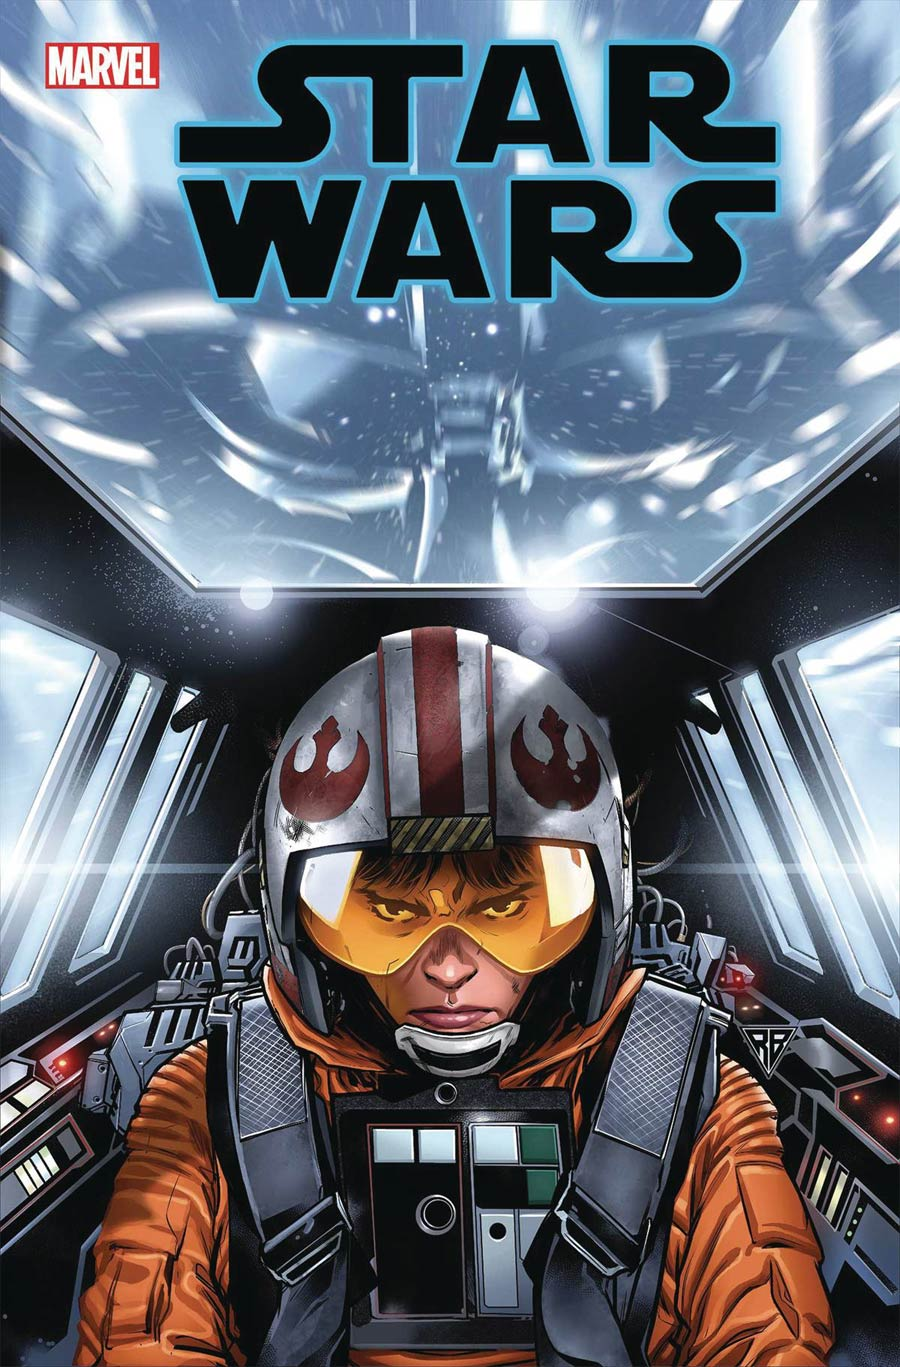 Star Wars Vol 5 #5 Cover A Regular RB Silva Cover